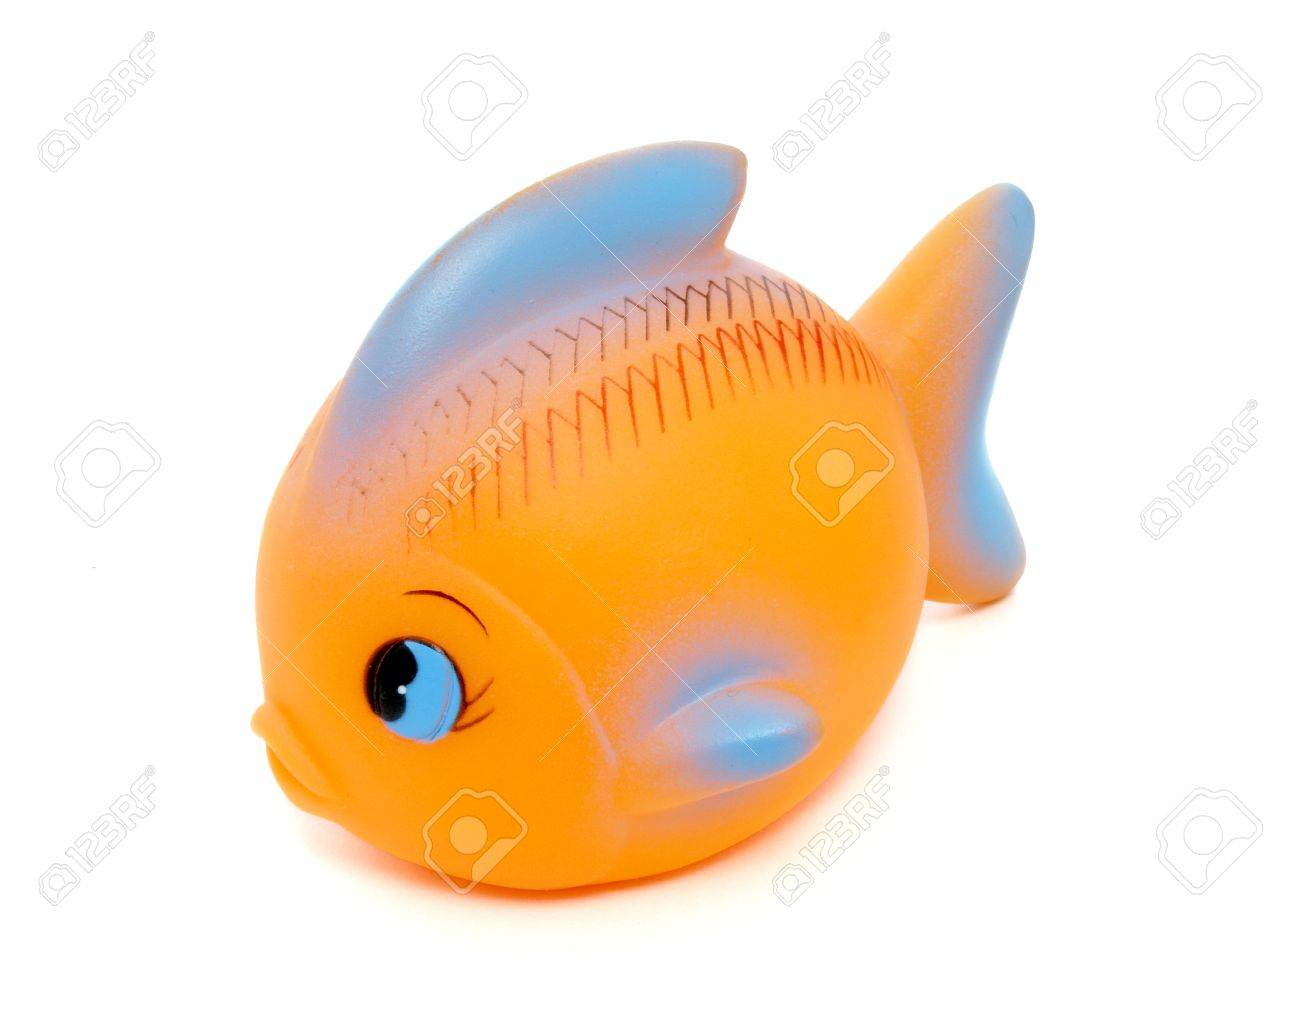 Close Up Of Orange Rubber Fish Toy On White Background With Path ...